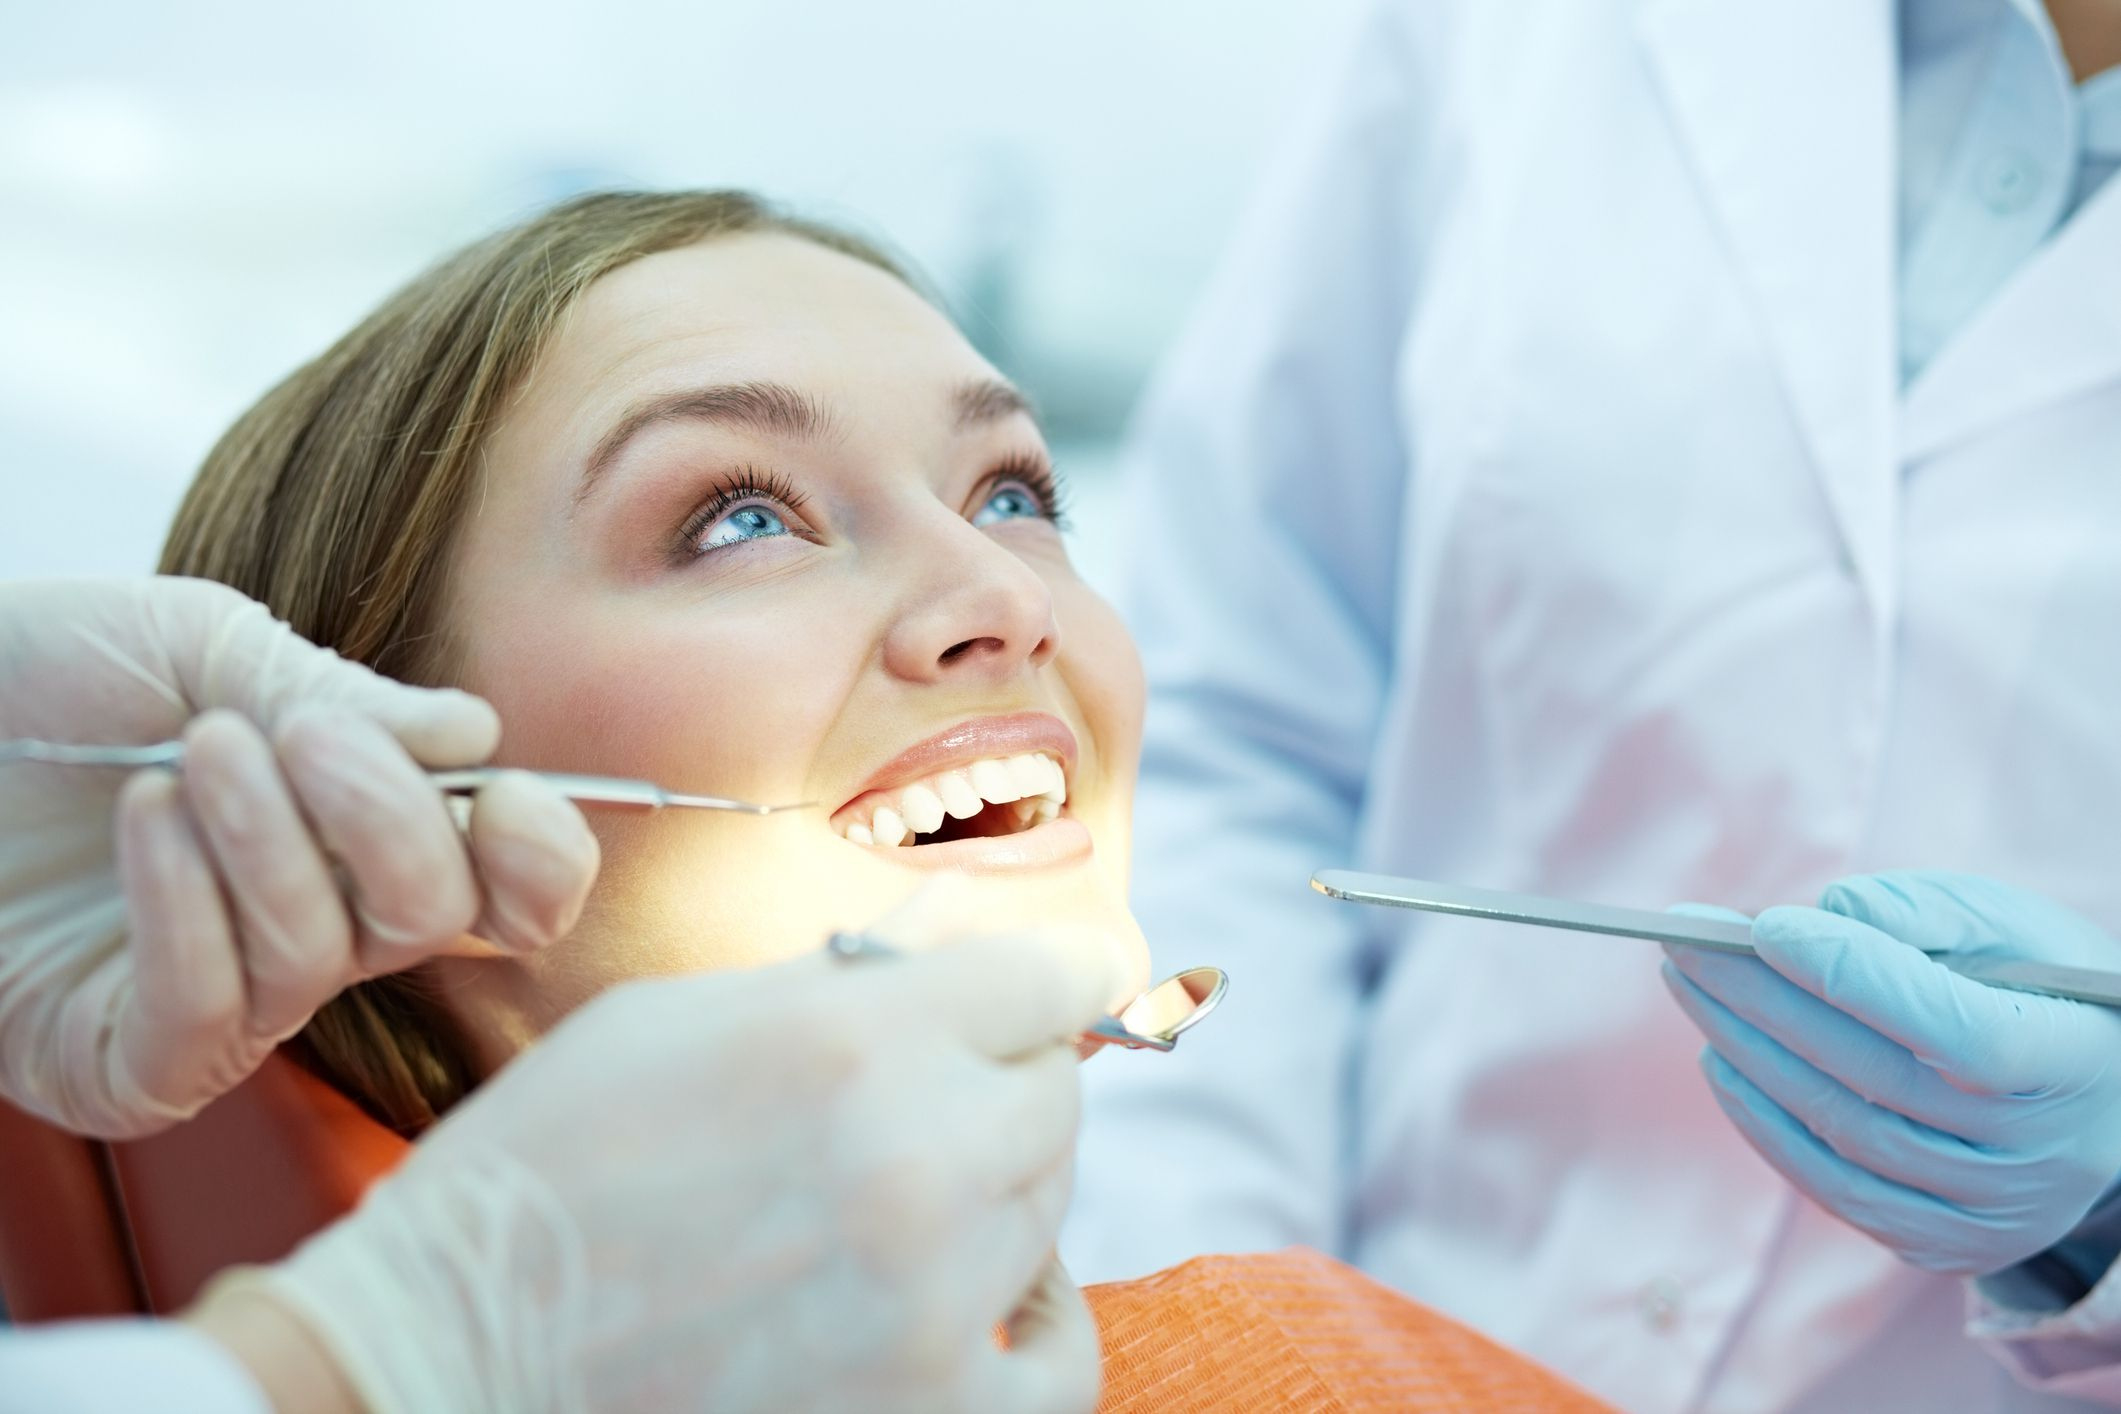 How to Find Good Orthodontic Dental Insurance